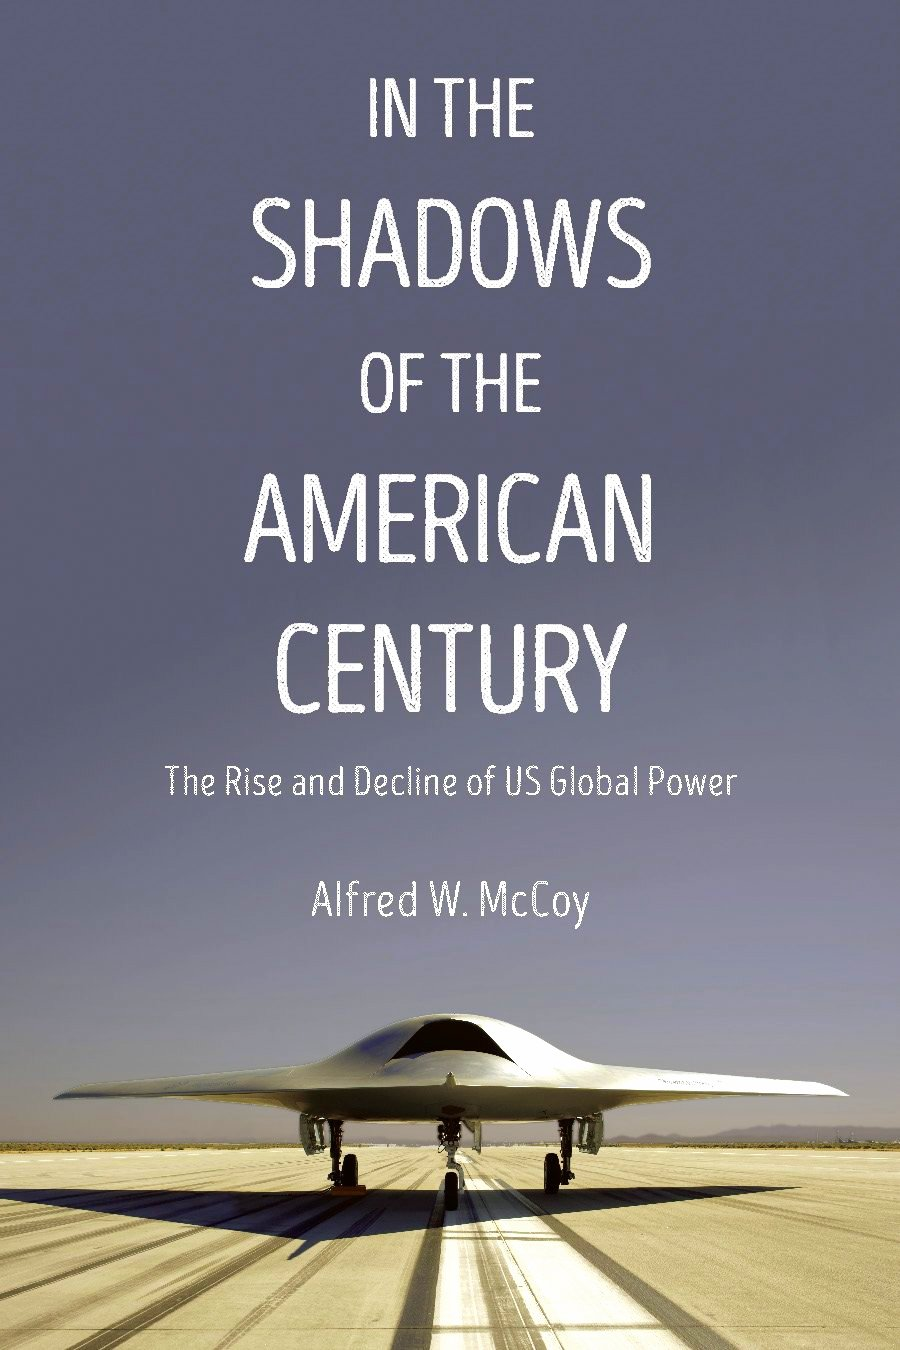 Non-Fiction: In the Shadows of the American Century by Alfred W. McCoy